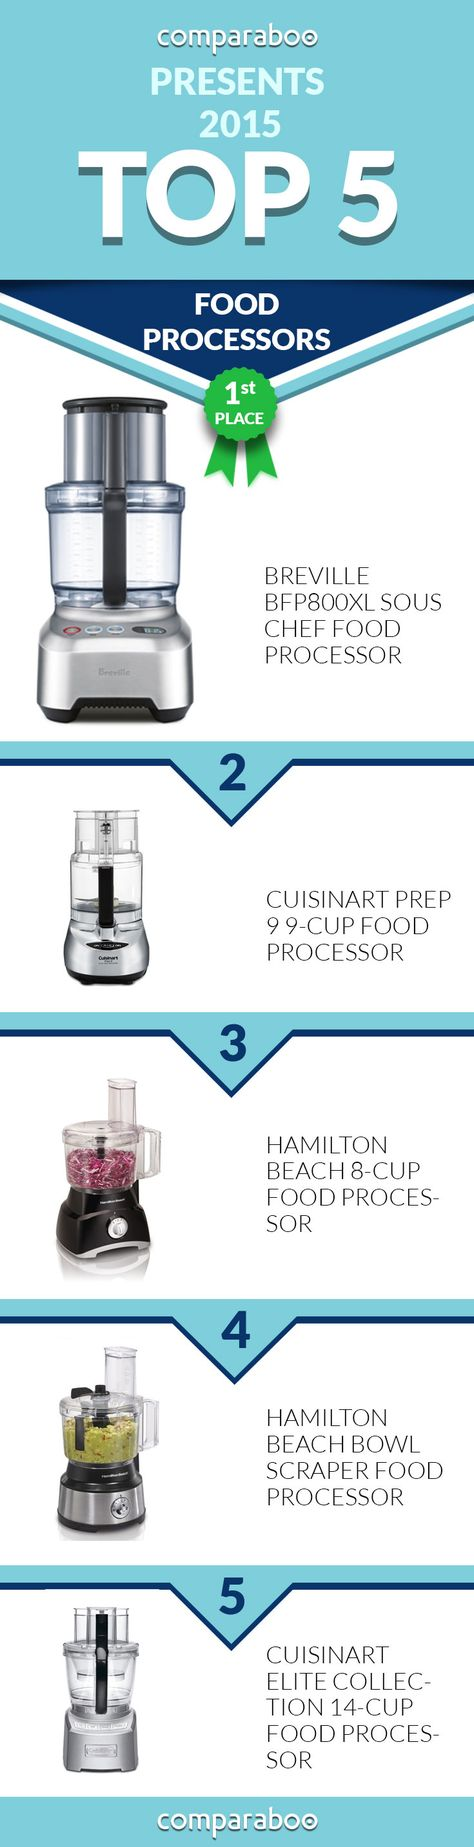 Check out the Best Food Processors on Comparaboo! www.comparaboo.com